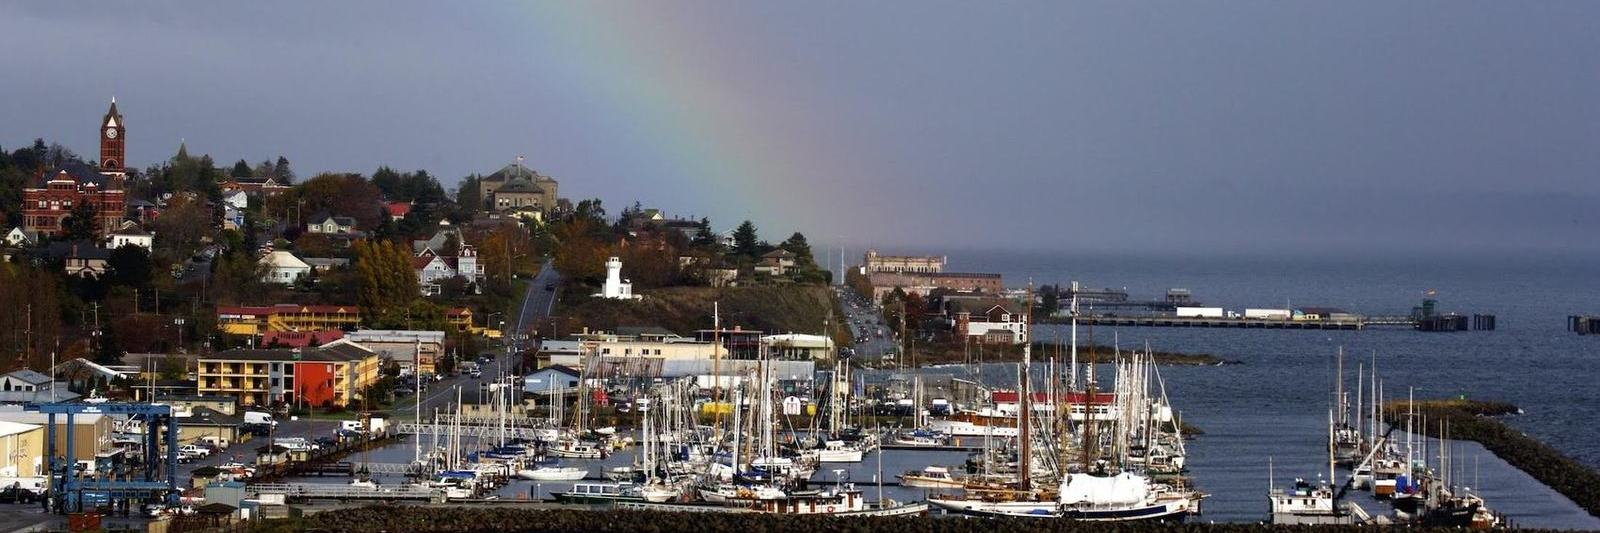 port-townsend-rainbow.jpg